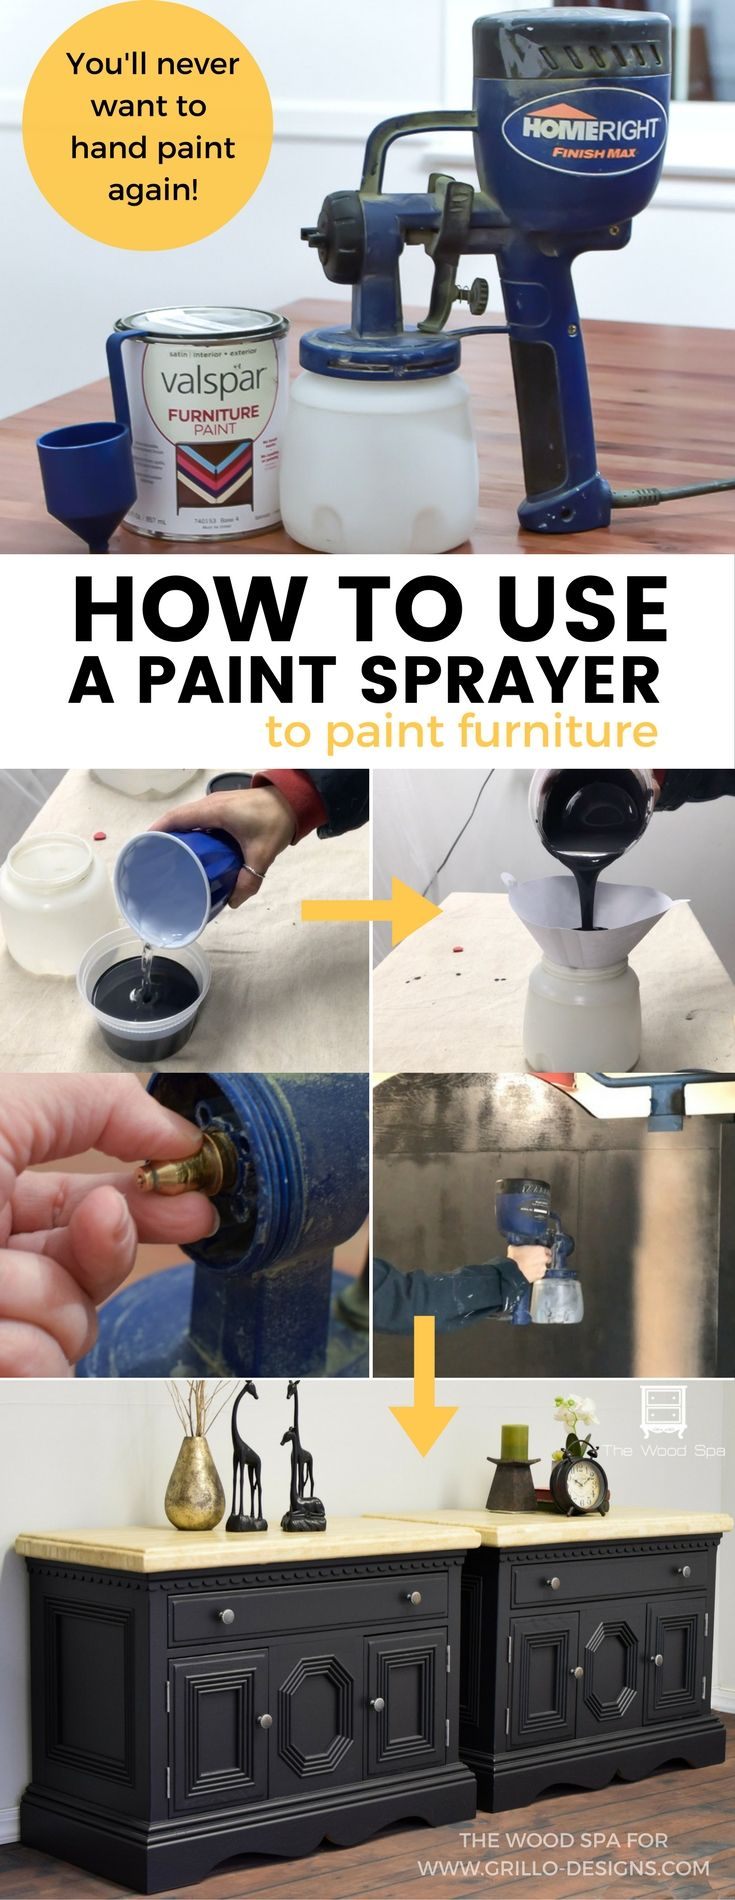 Paint Sprayer tutorial - A step by step guide shared by The Wood Spa on how to use a paint sprayer gun to paint furniture the right way!